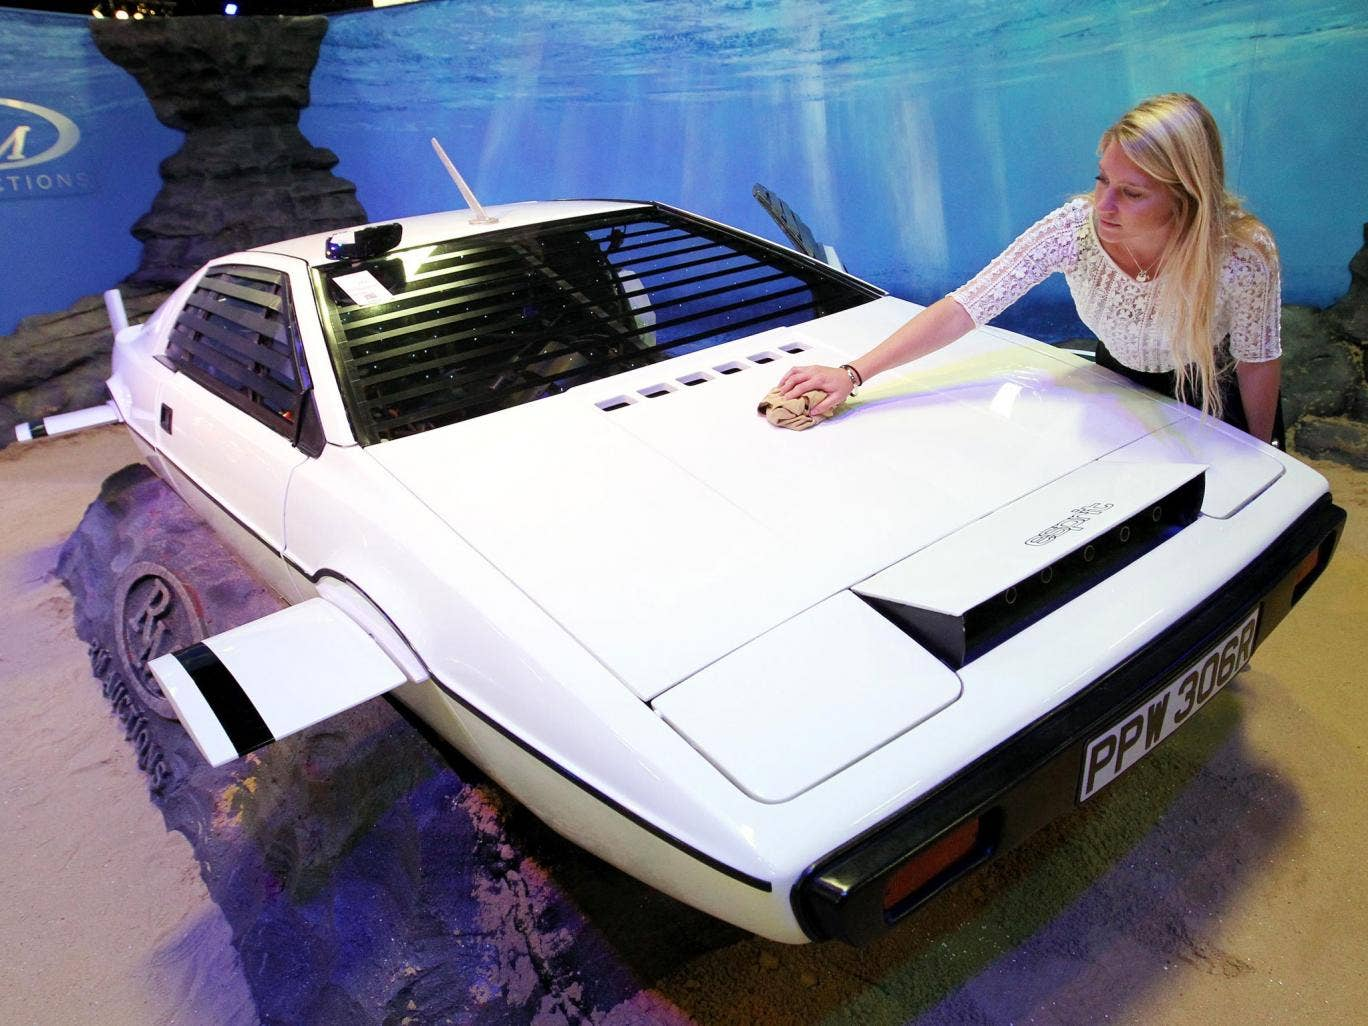 The submarine car used in the James Bond movie The Spy Who Loved Me is up for auction